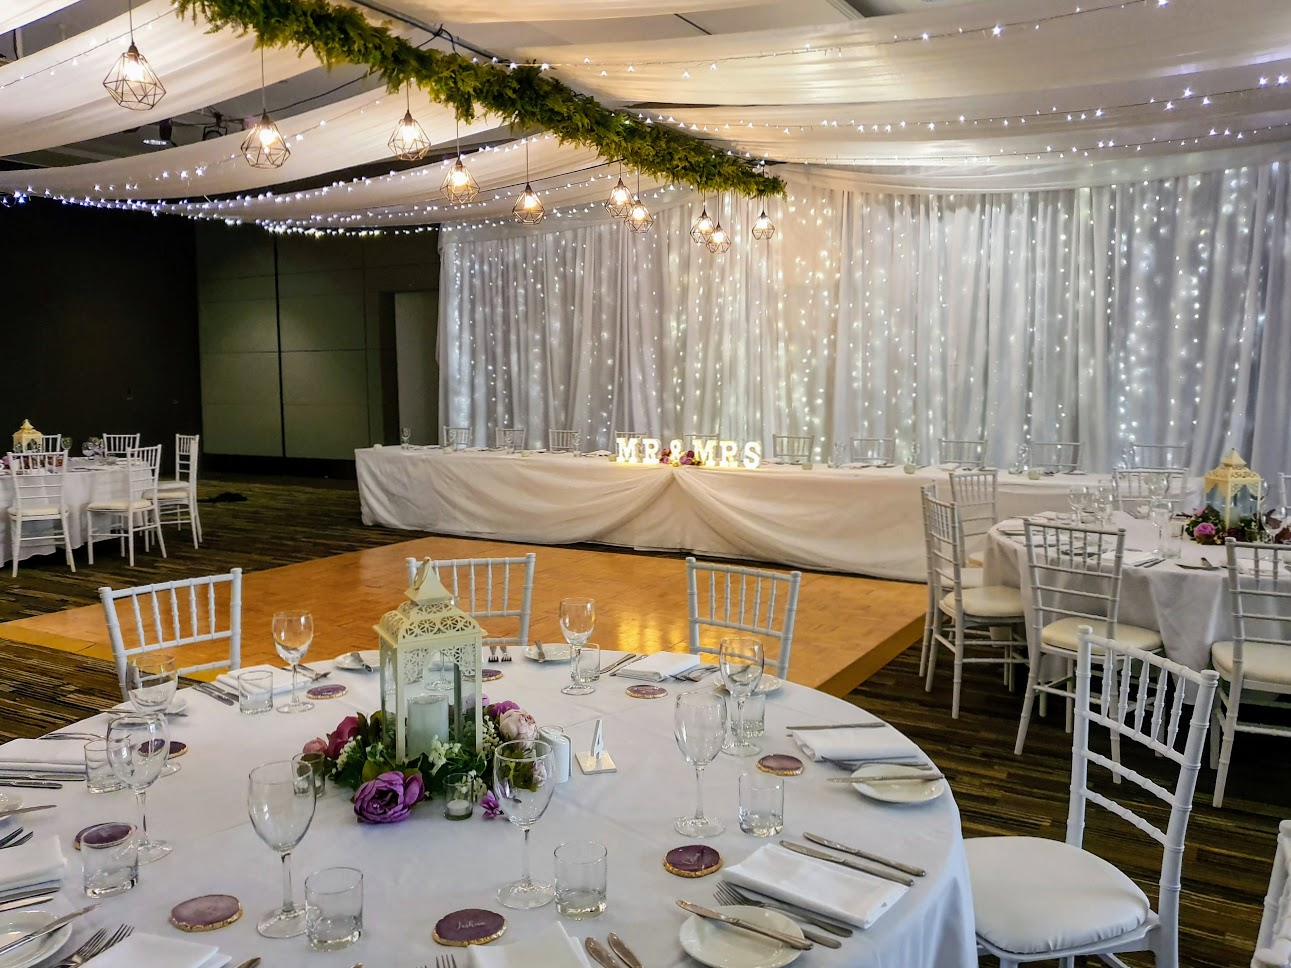 Jetty Harbour Rooms - Marquee ceiling canopy, greenery & wrought iron pendent lanterns spine, Tiffany chairs. daisy lanterns - Pacific Bay Resort